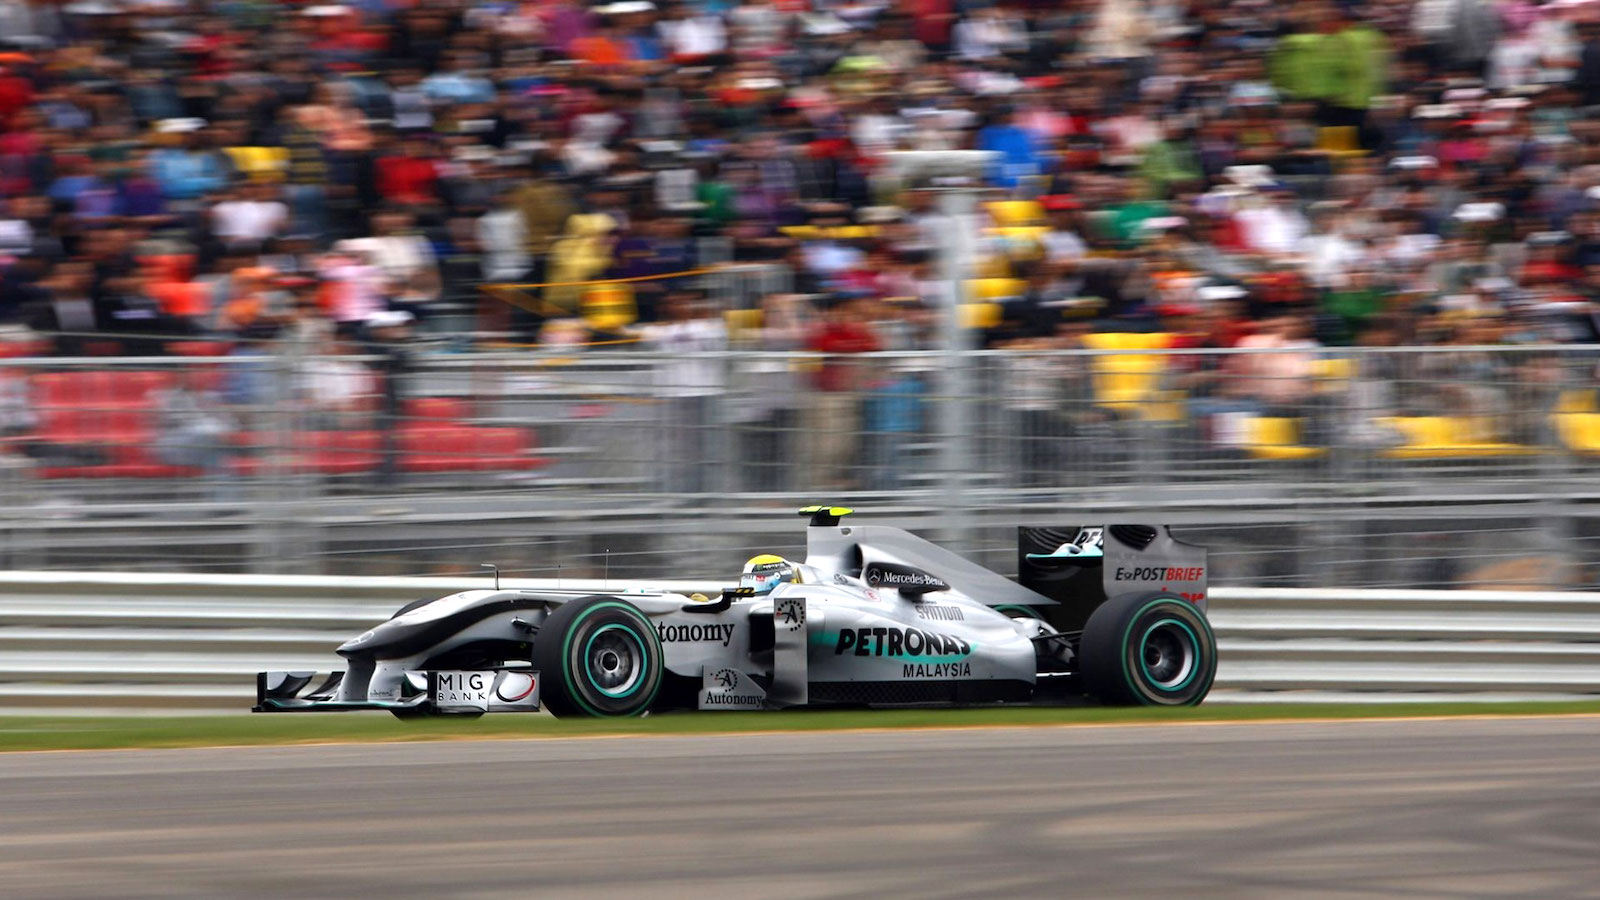 yeongam-f1-wallpaper-2010-9